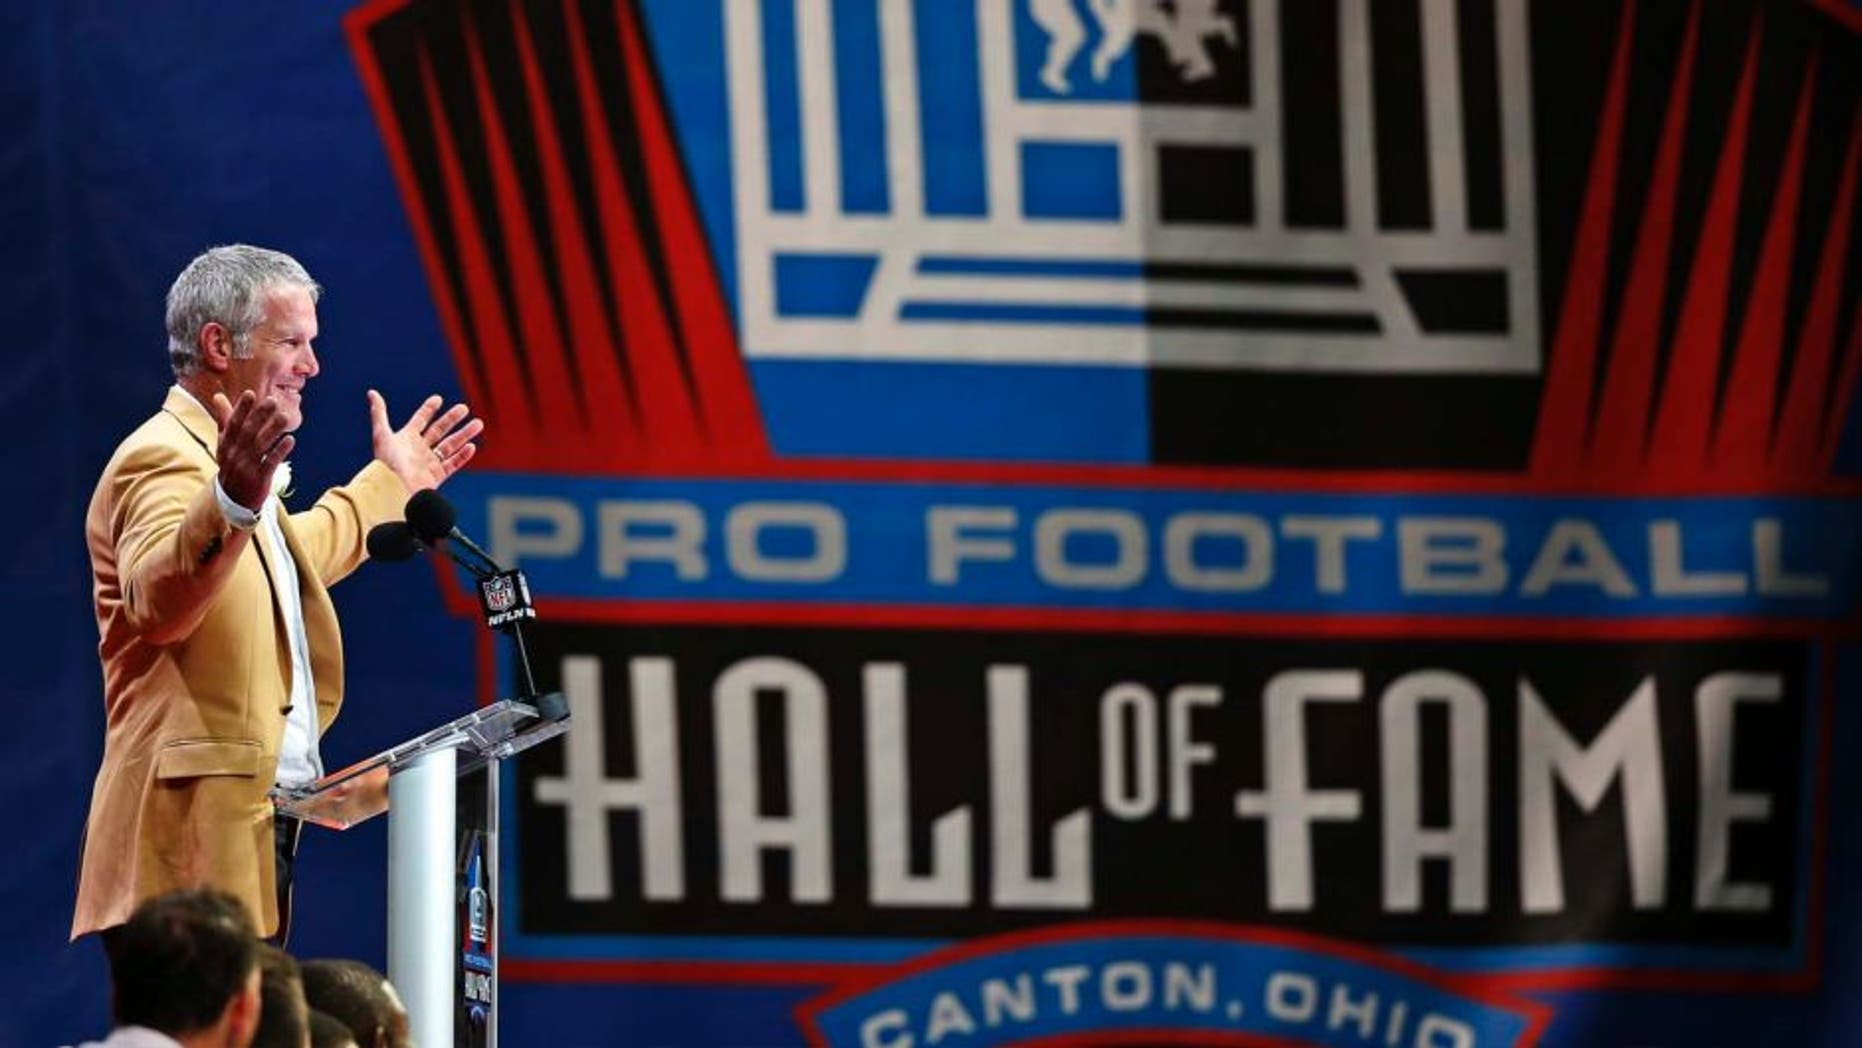 Former NFL quarterback Brett Favre delivers his speech during inductions at the Pro Football Hall of Fame on Saturday, Aug.6, 2016, in Canton, Ohio.